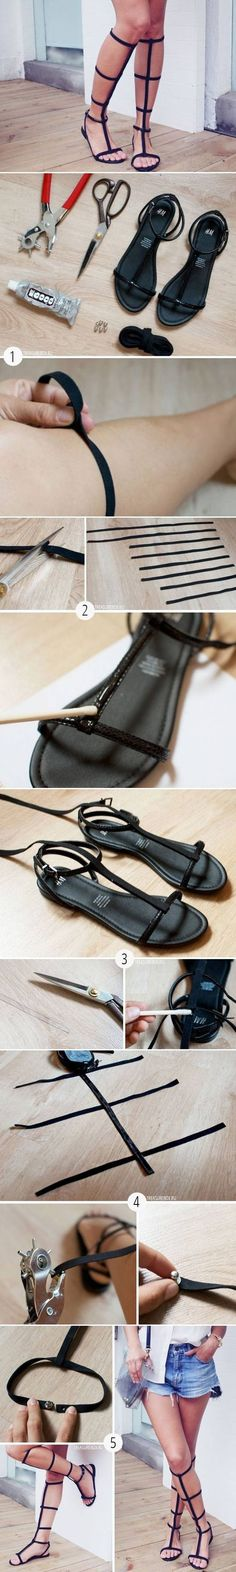 DIY Long Strap Shoes crafts craft ideas easy crafts diy ideas diy crafts diy clothes easy diy fun diy diy shoes craft fashion craft shirt fashion diy craft shoes